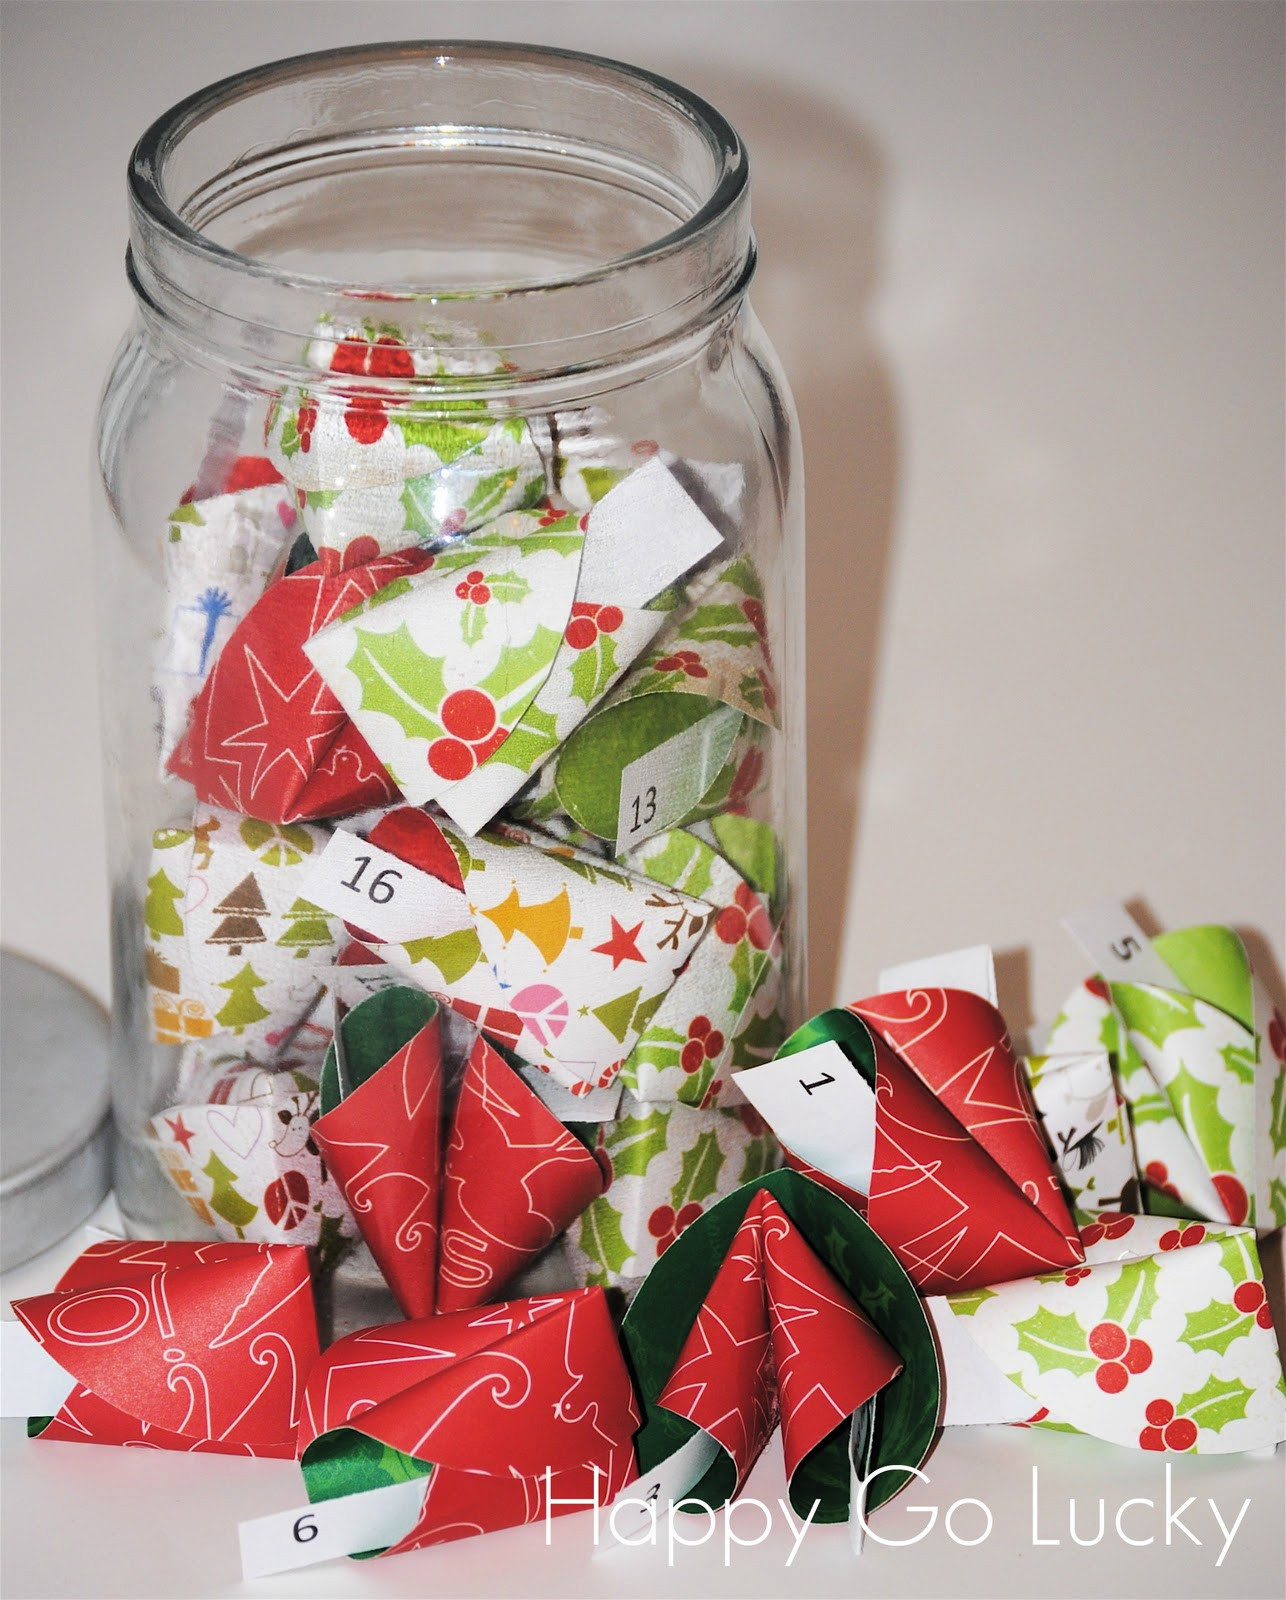 Christmas Fortune Cookies  Christmas Countdown Fortune Cookies Happy Go Lucky